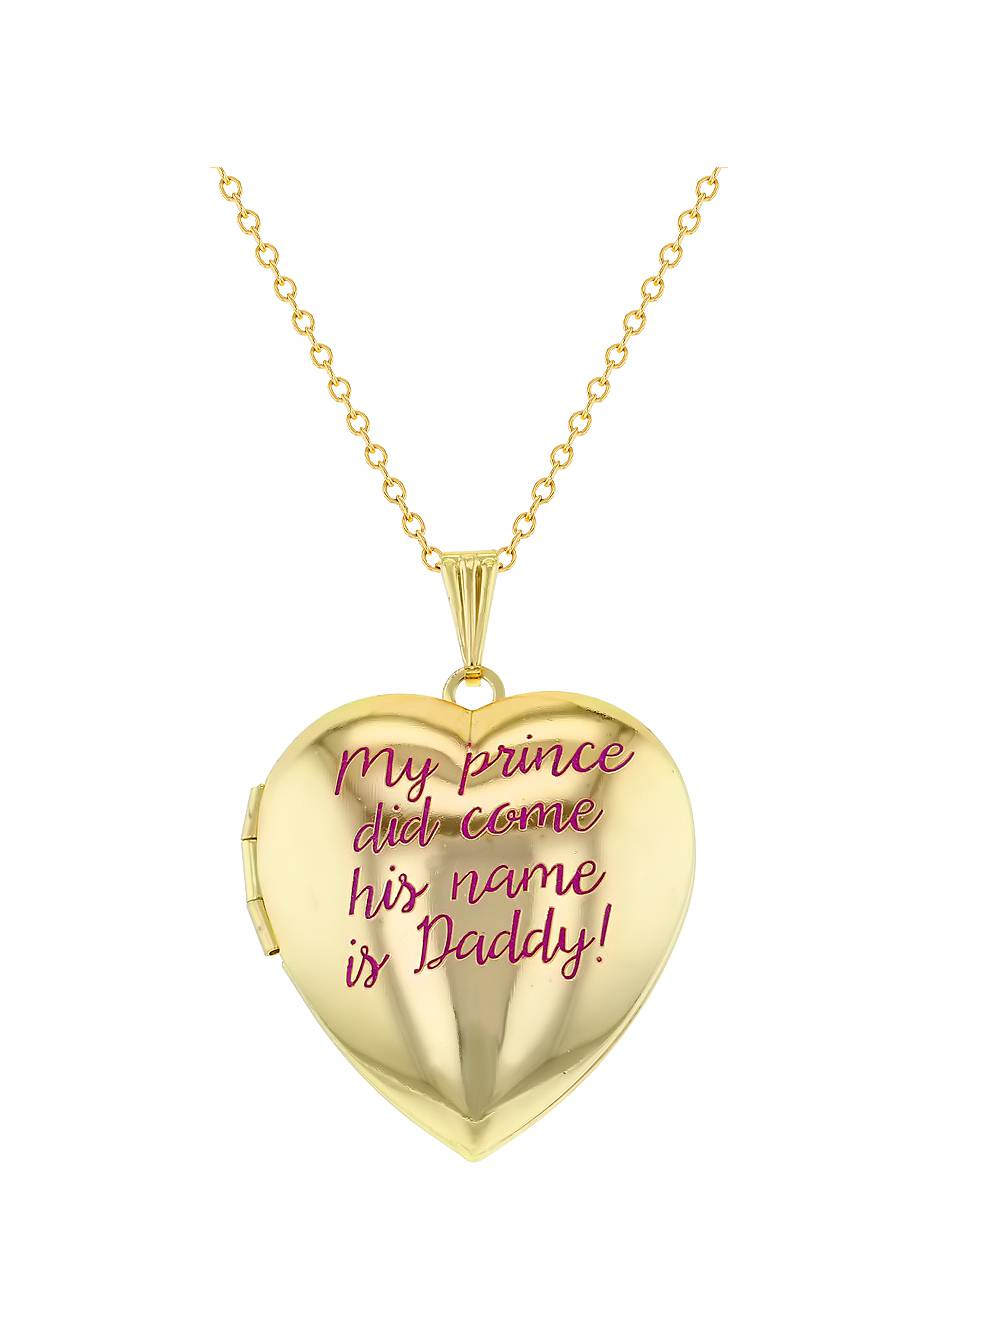 necklace necklaces lockets childrens girl charming gold of ideas collection jewelry in inspirational heart lovely